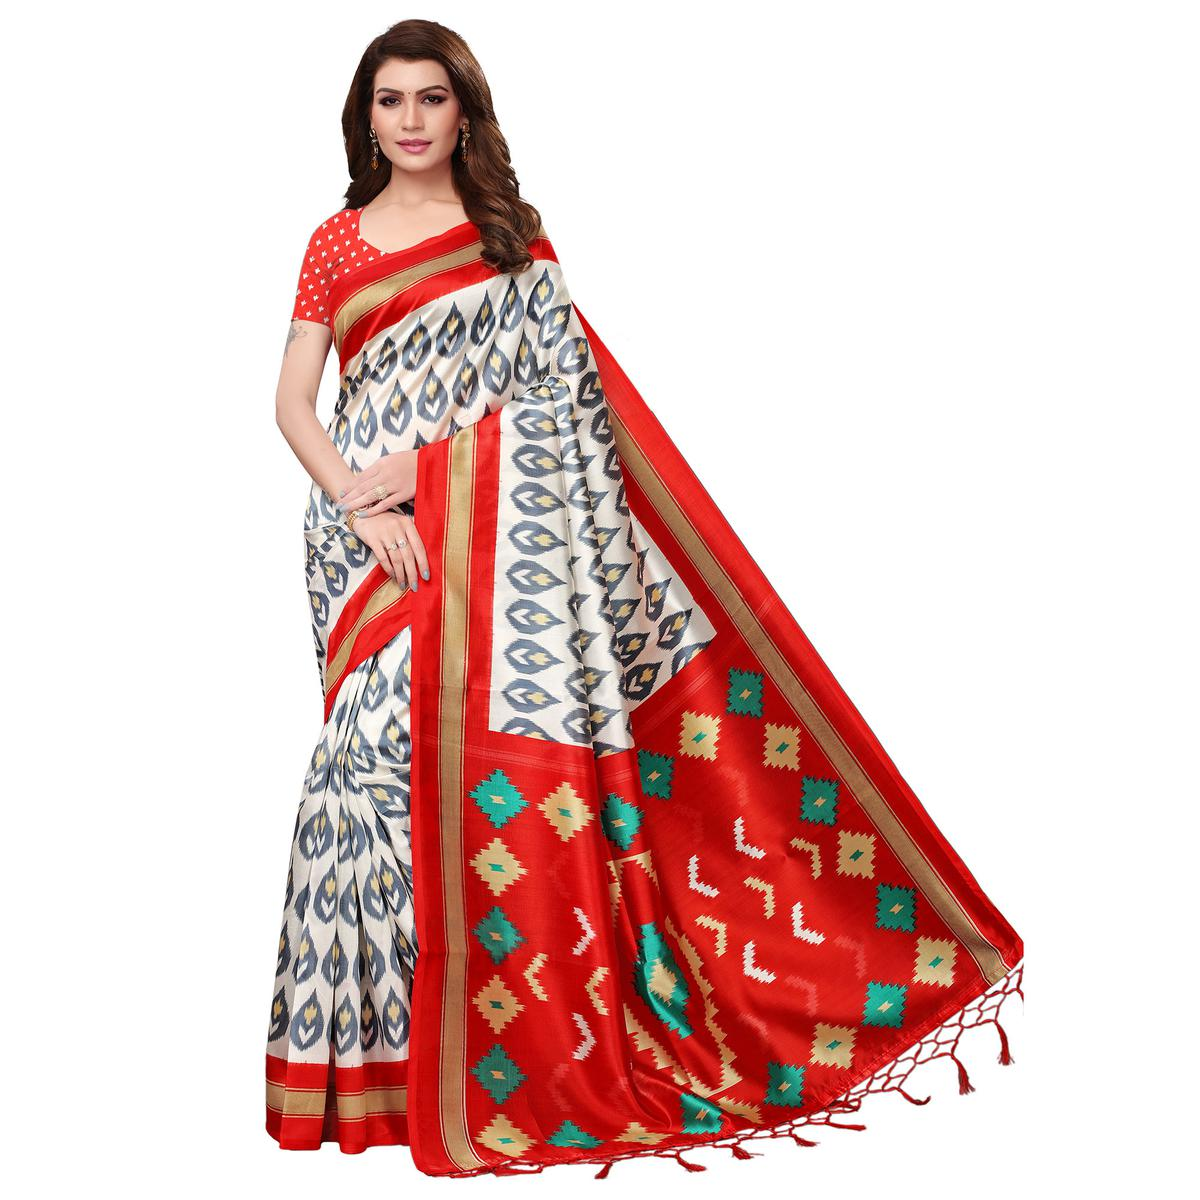 Majesty White-Red Colored Festive Wear Mysore Silk Saree With Tassels